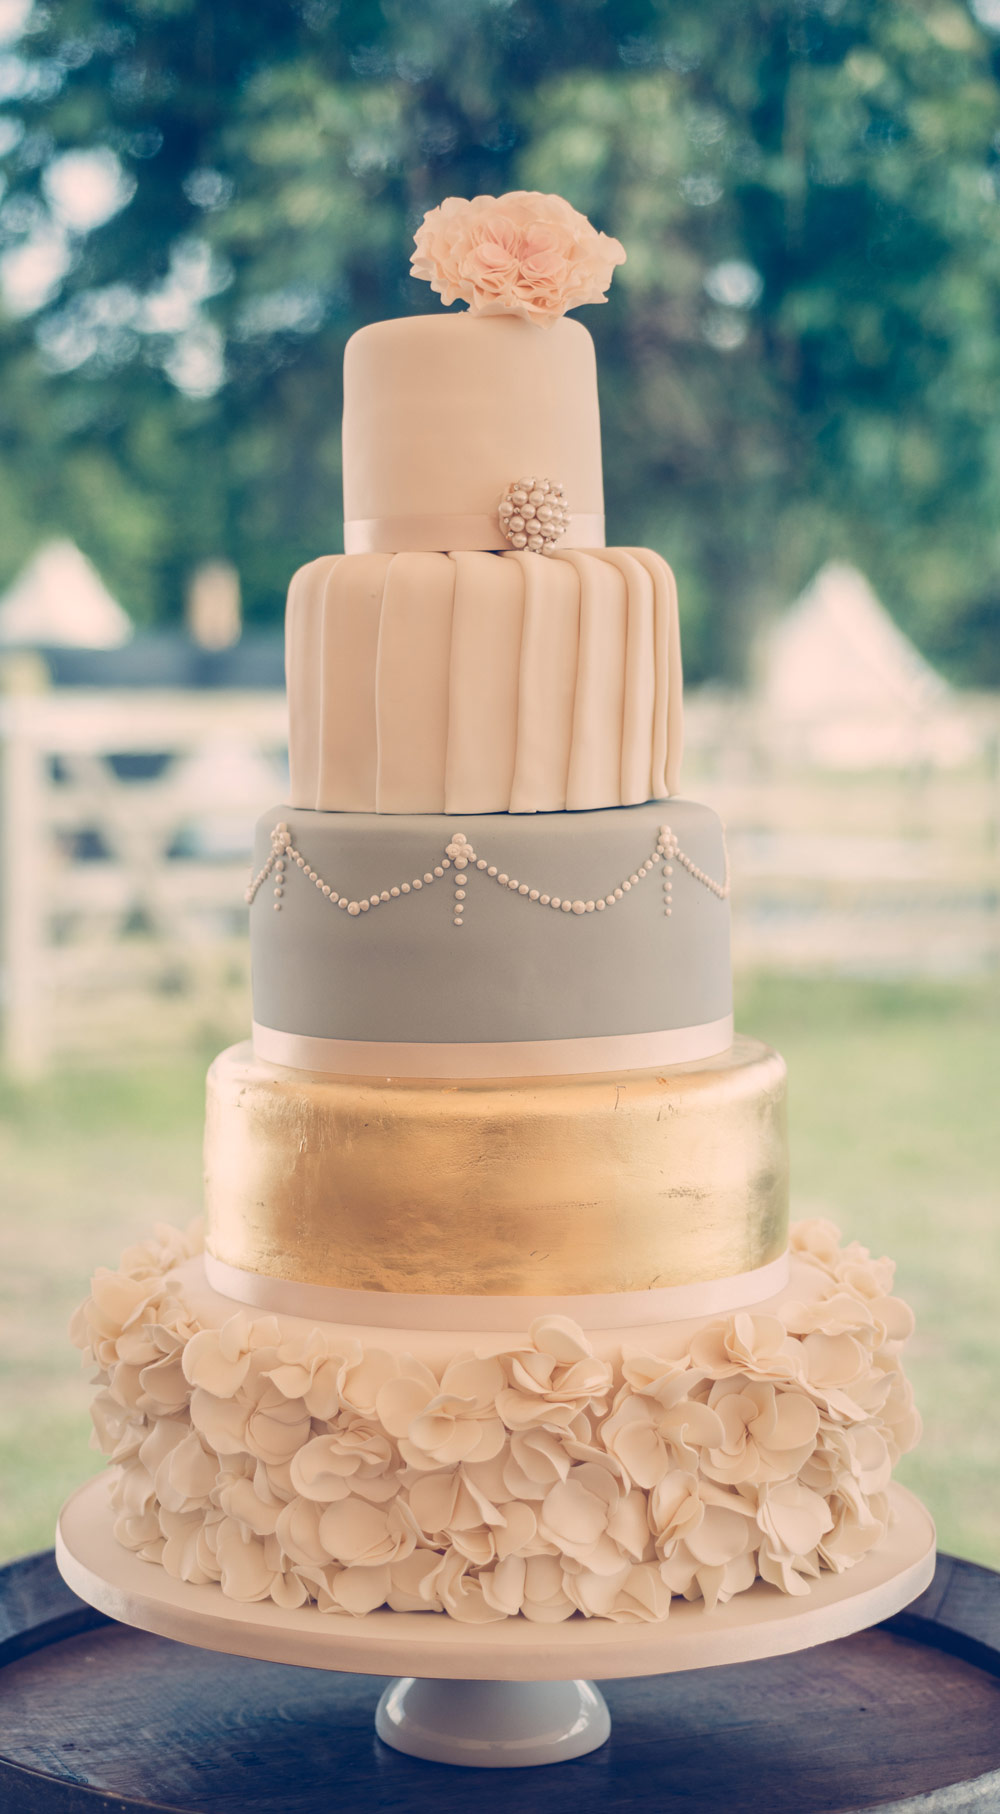 wedding cakes derbyshire area the pretty cake company weddings wedding cakes oxfordshire 24180